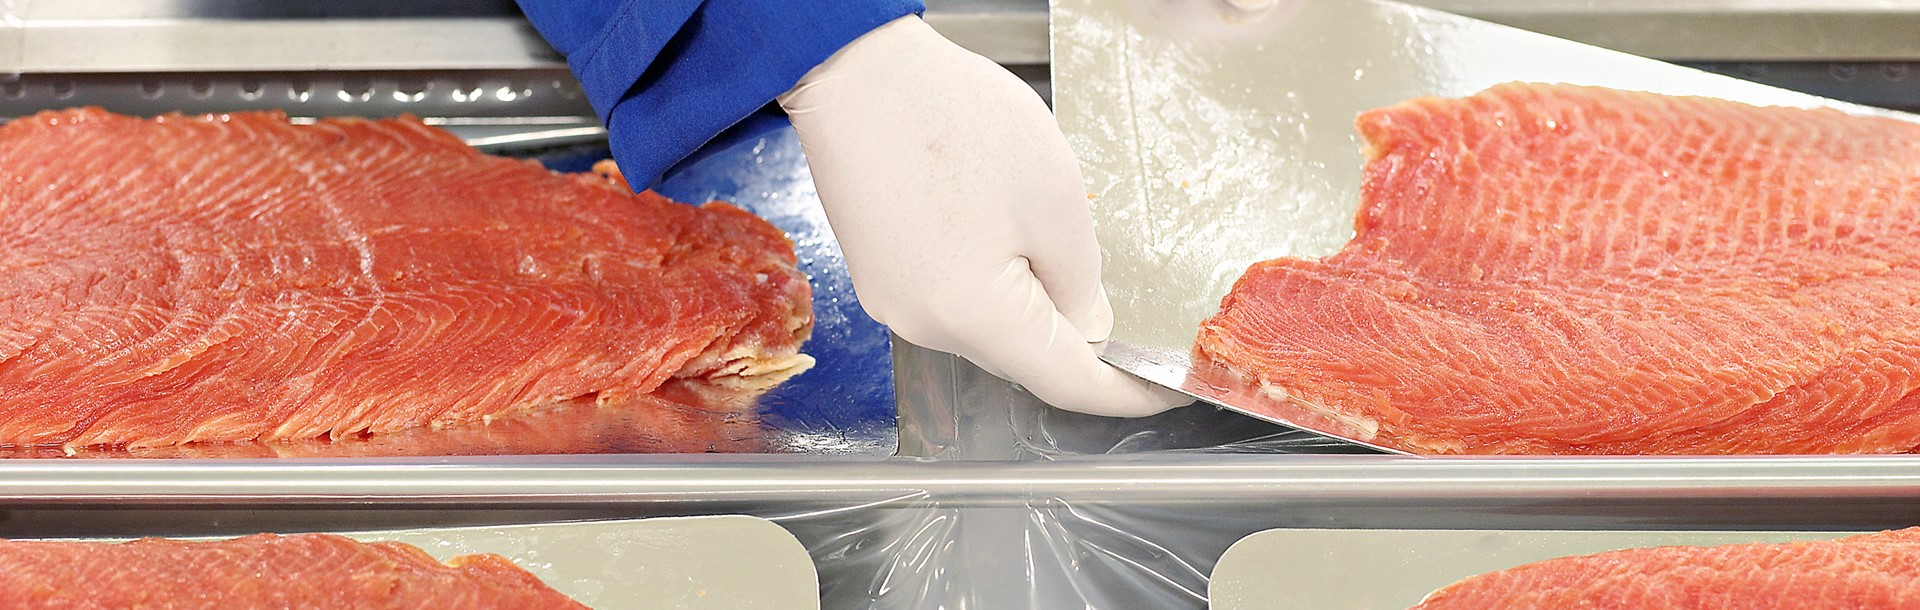 fish-packing-6.jpg